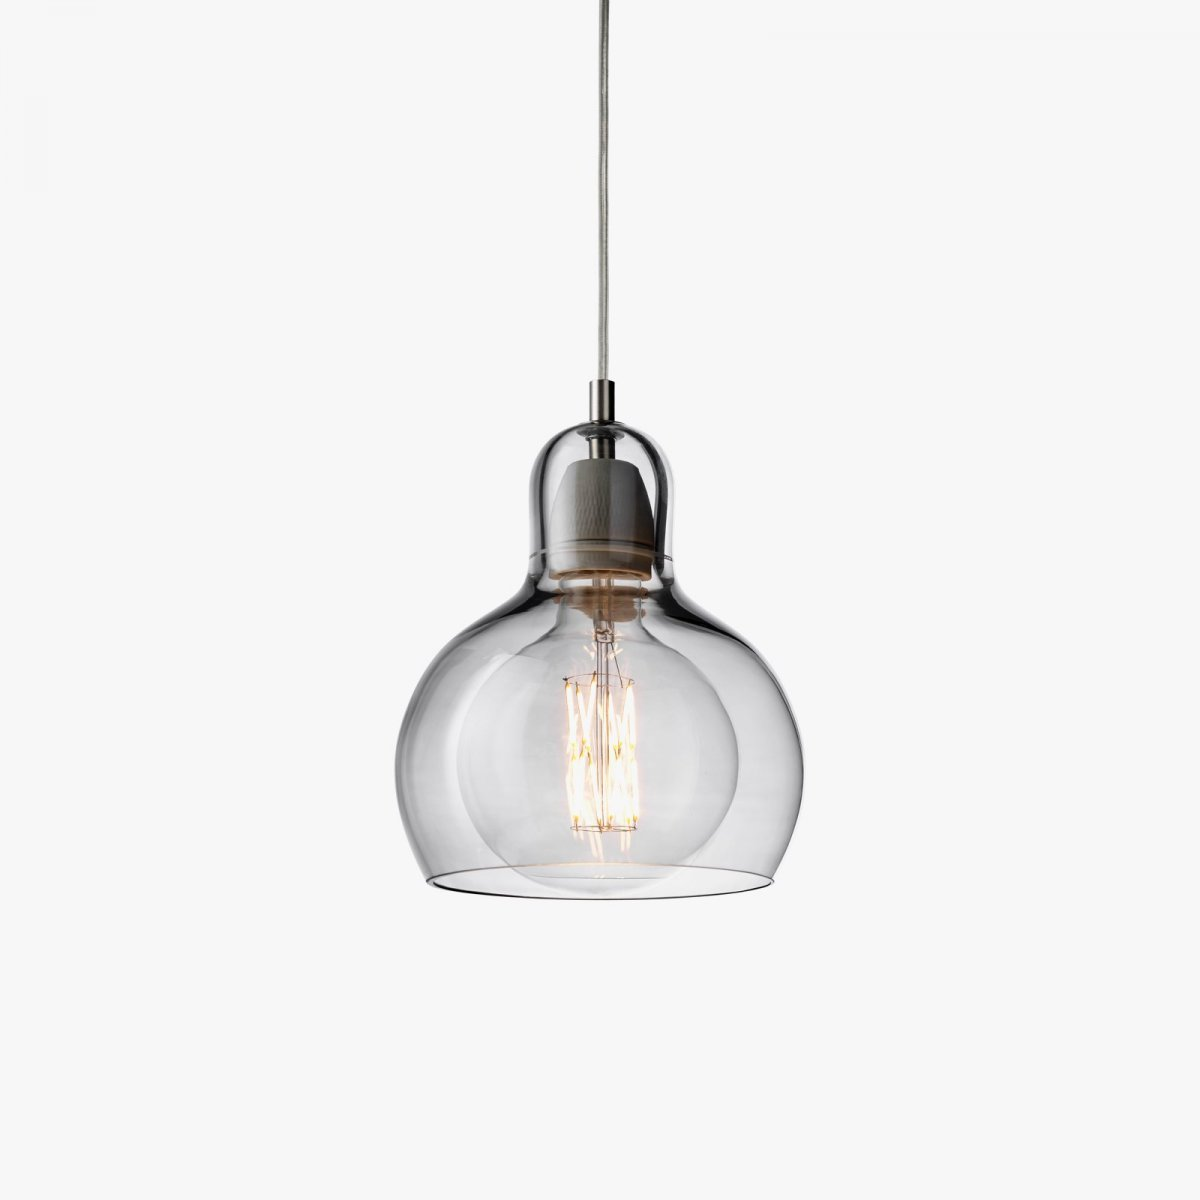 Mega Bulb SR2, silver luster glass with clear PVC cord.